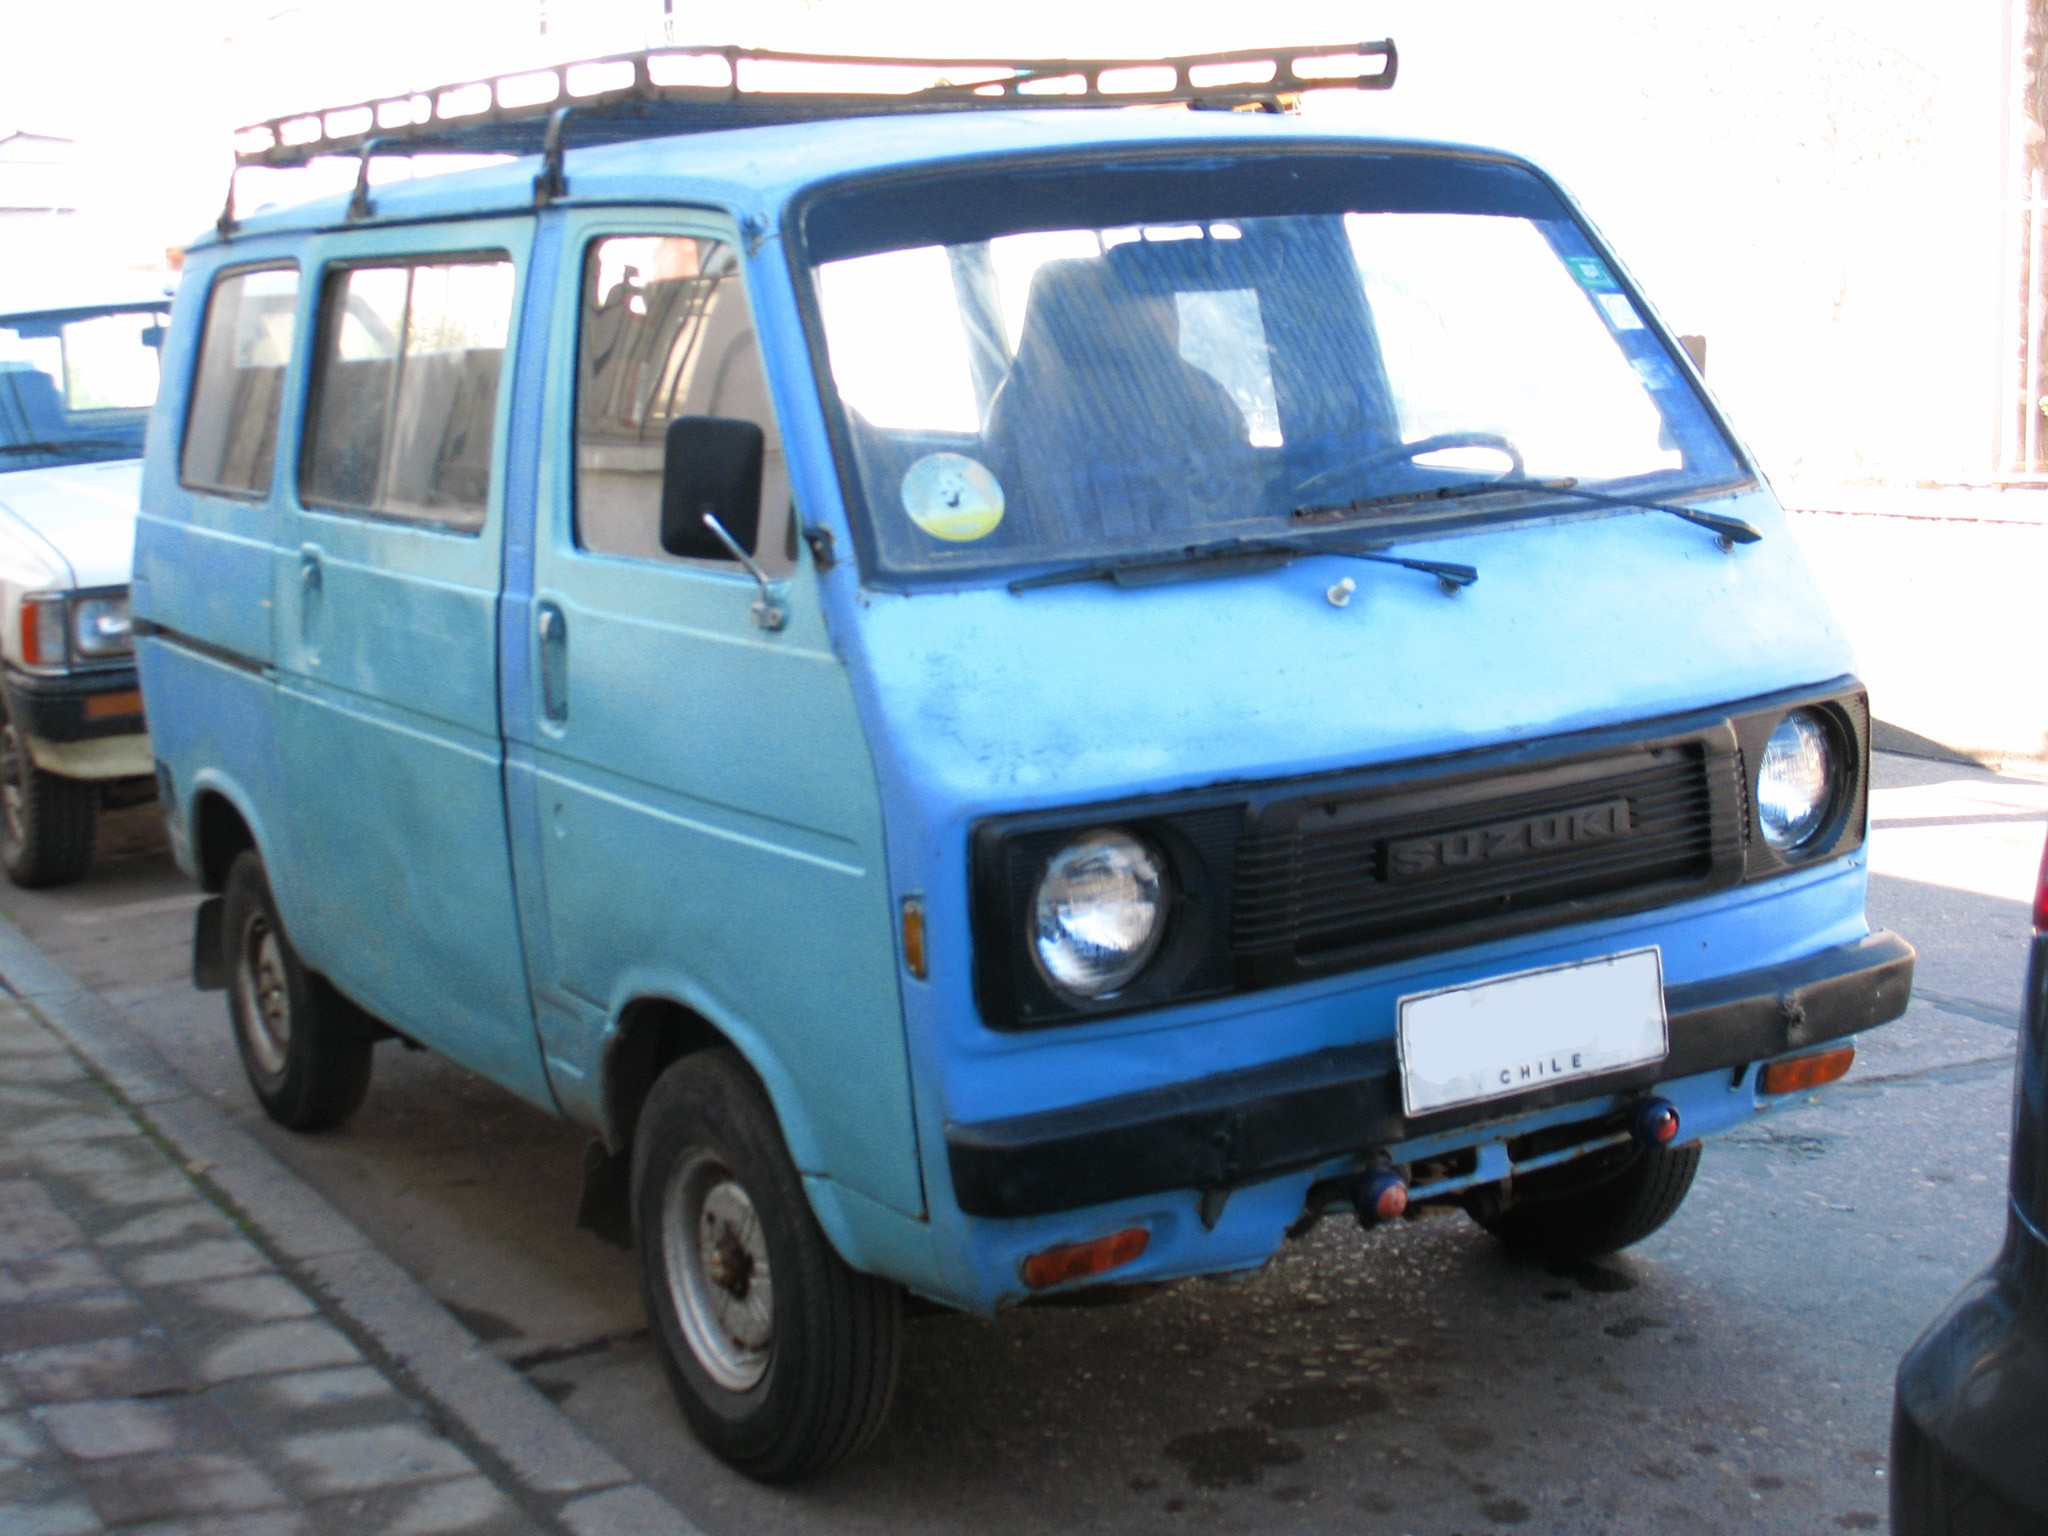 ST80V facelift version Chile This style of grille appeared in October 1977